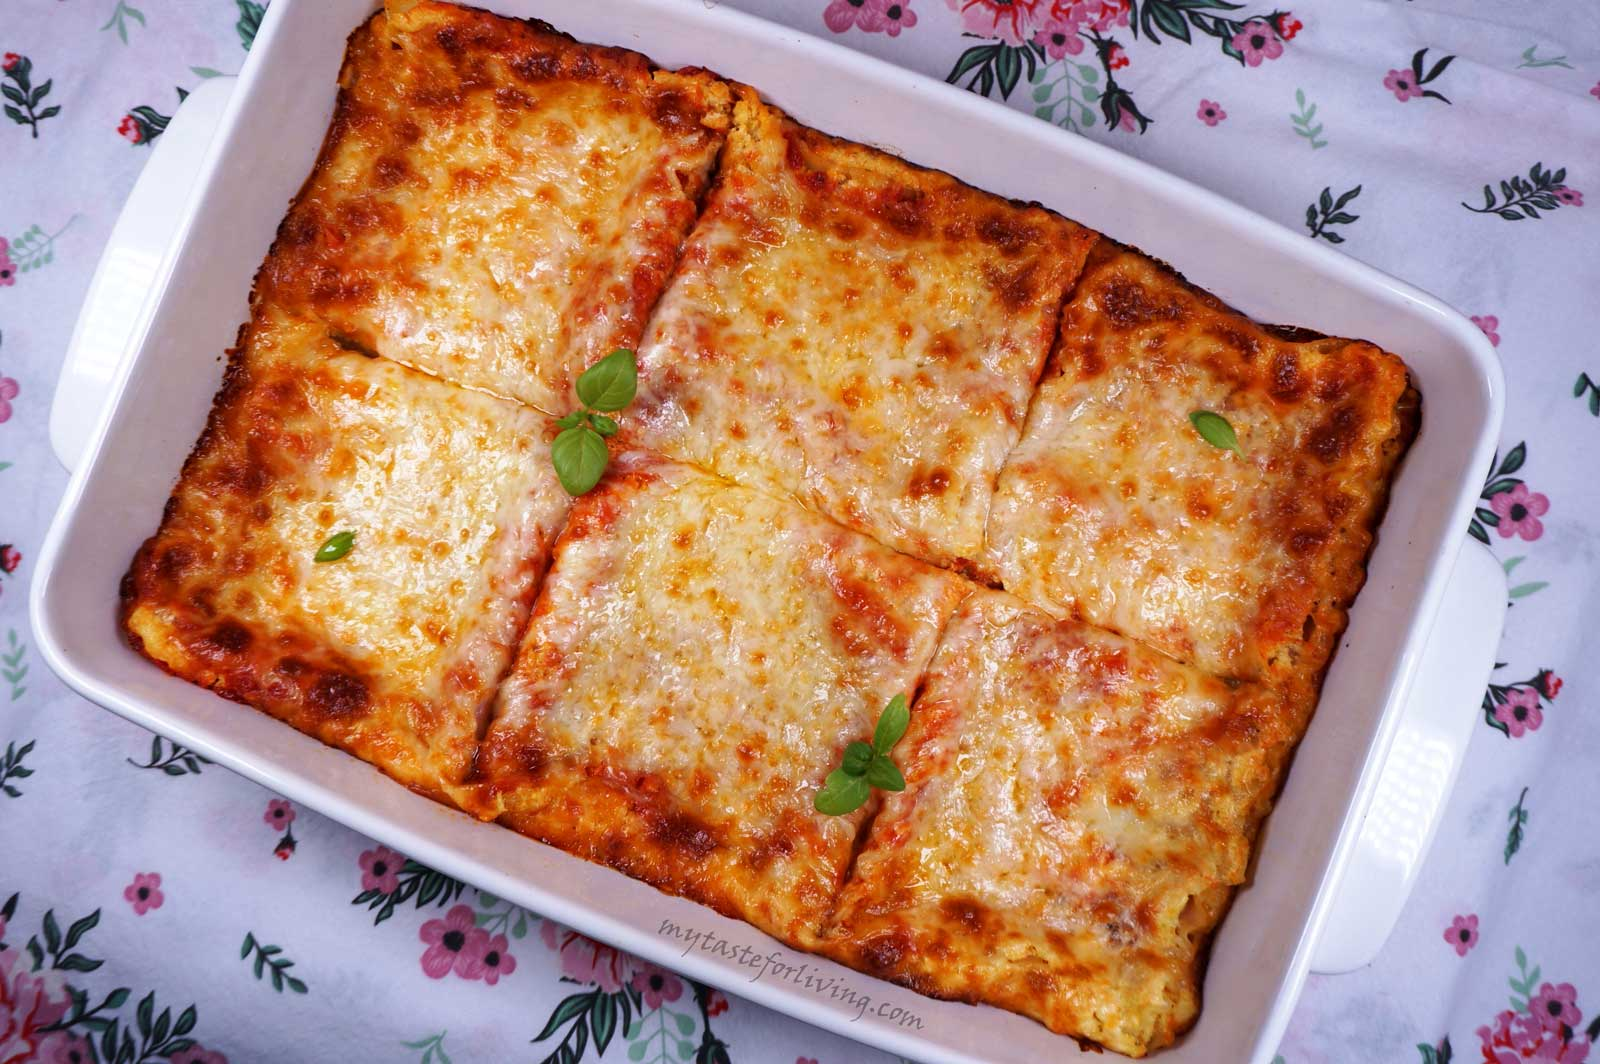 I love lasagna! And by preparing it in this way I managed to impress the children at home! For the preparation of the lasagna I use home made tomato sauce with basil, stewed zucchini, carrots and onions with parmesan and ricotta, lasagna noodles and grated mozzarella or yellow cheese.